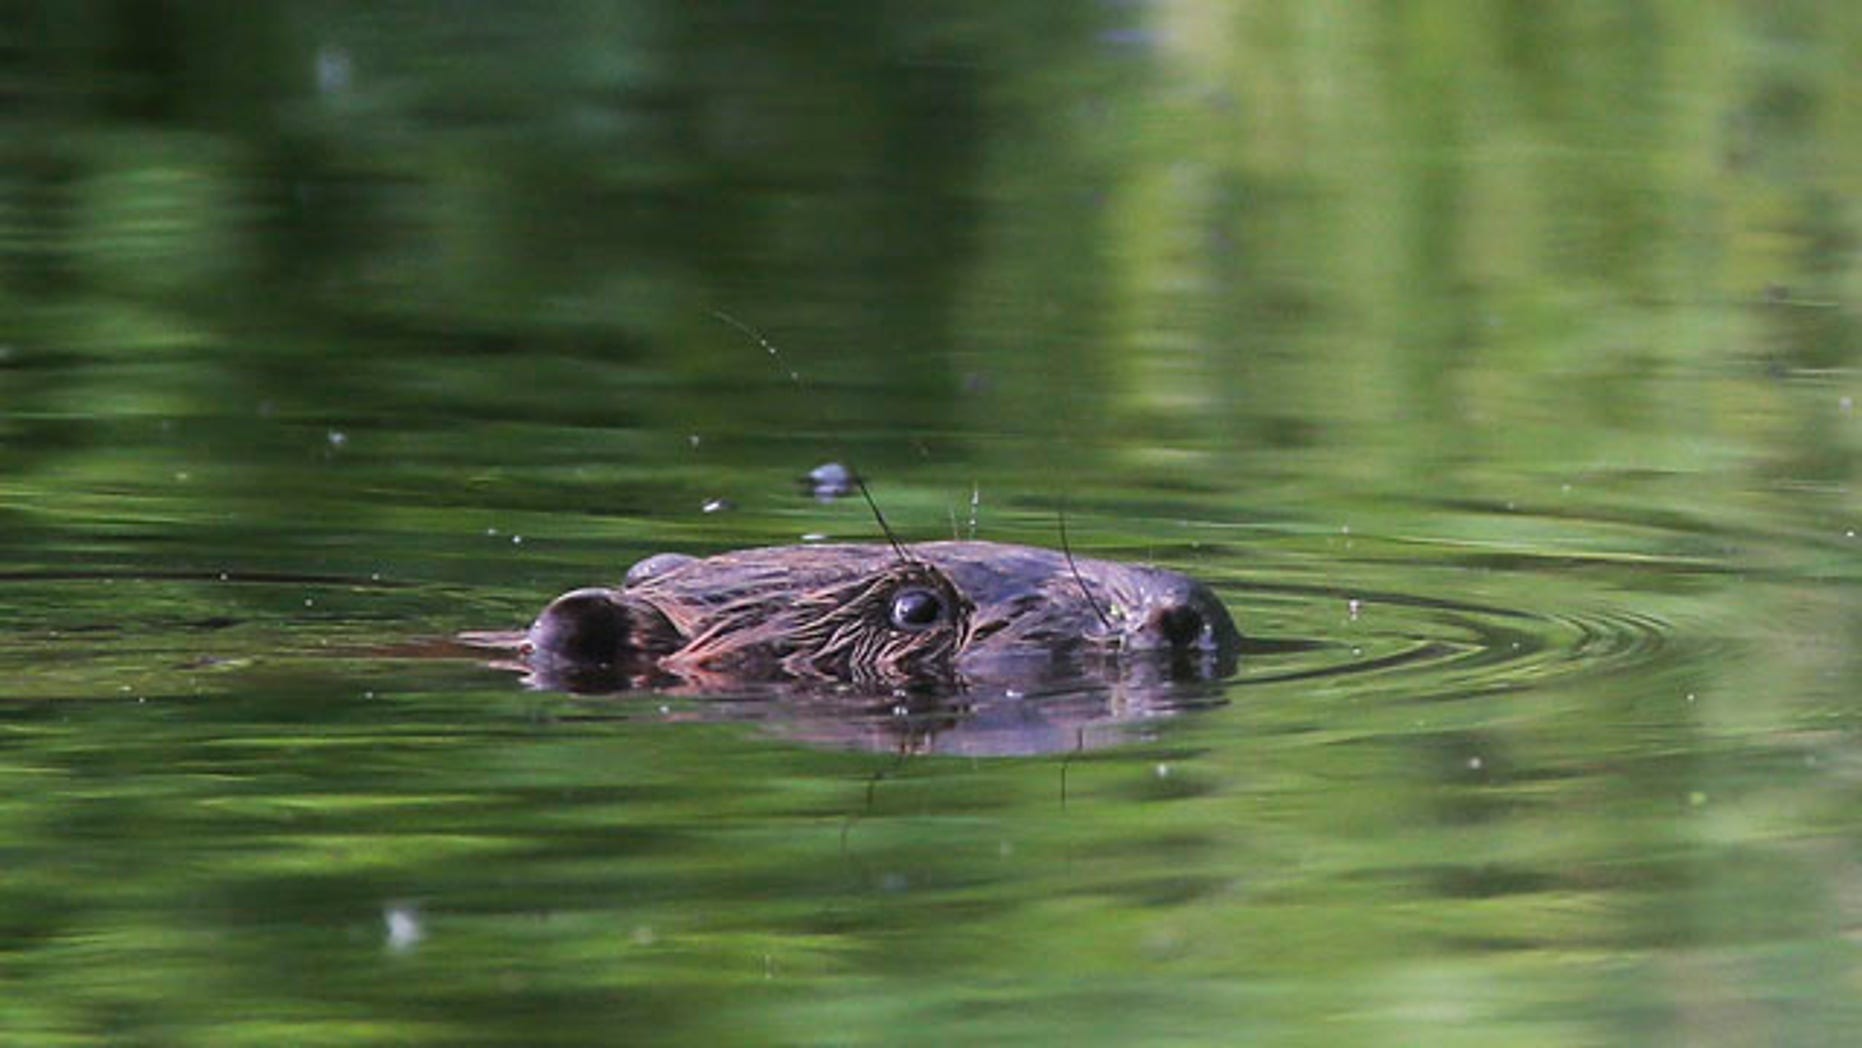 May 26, 2013: A beaver swimming in a pond in the forest near the village of Lovtsevichi.